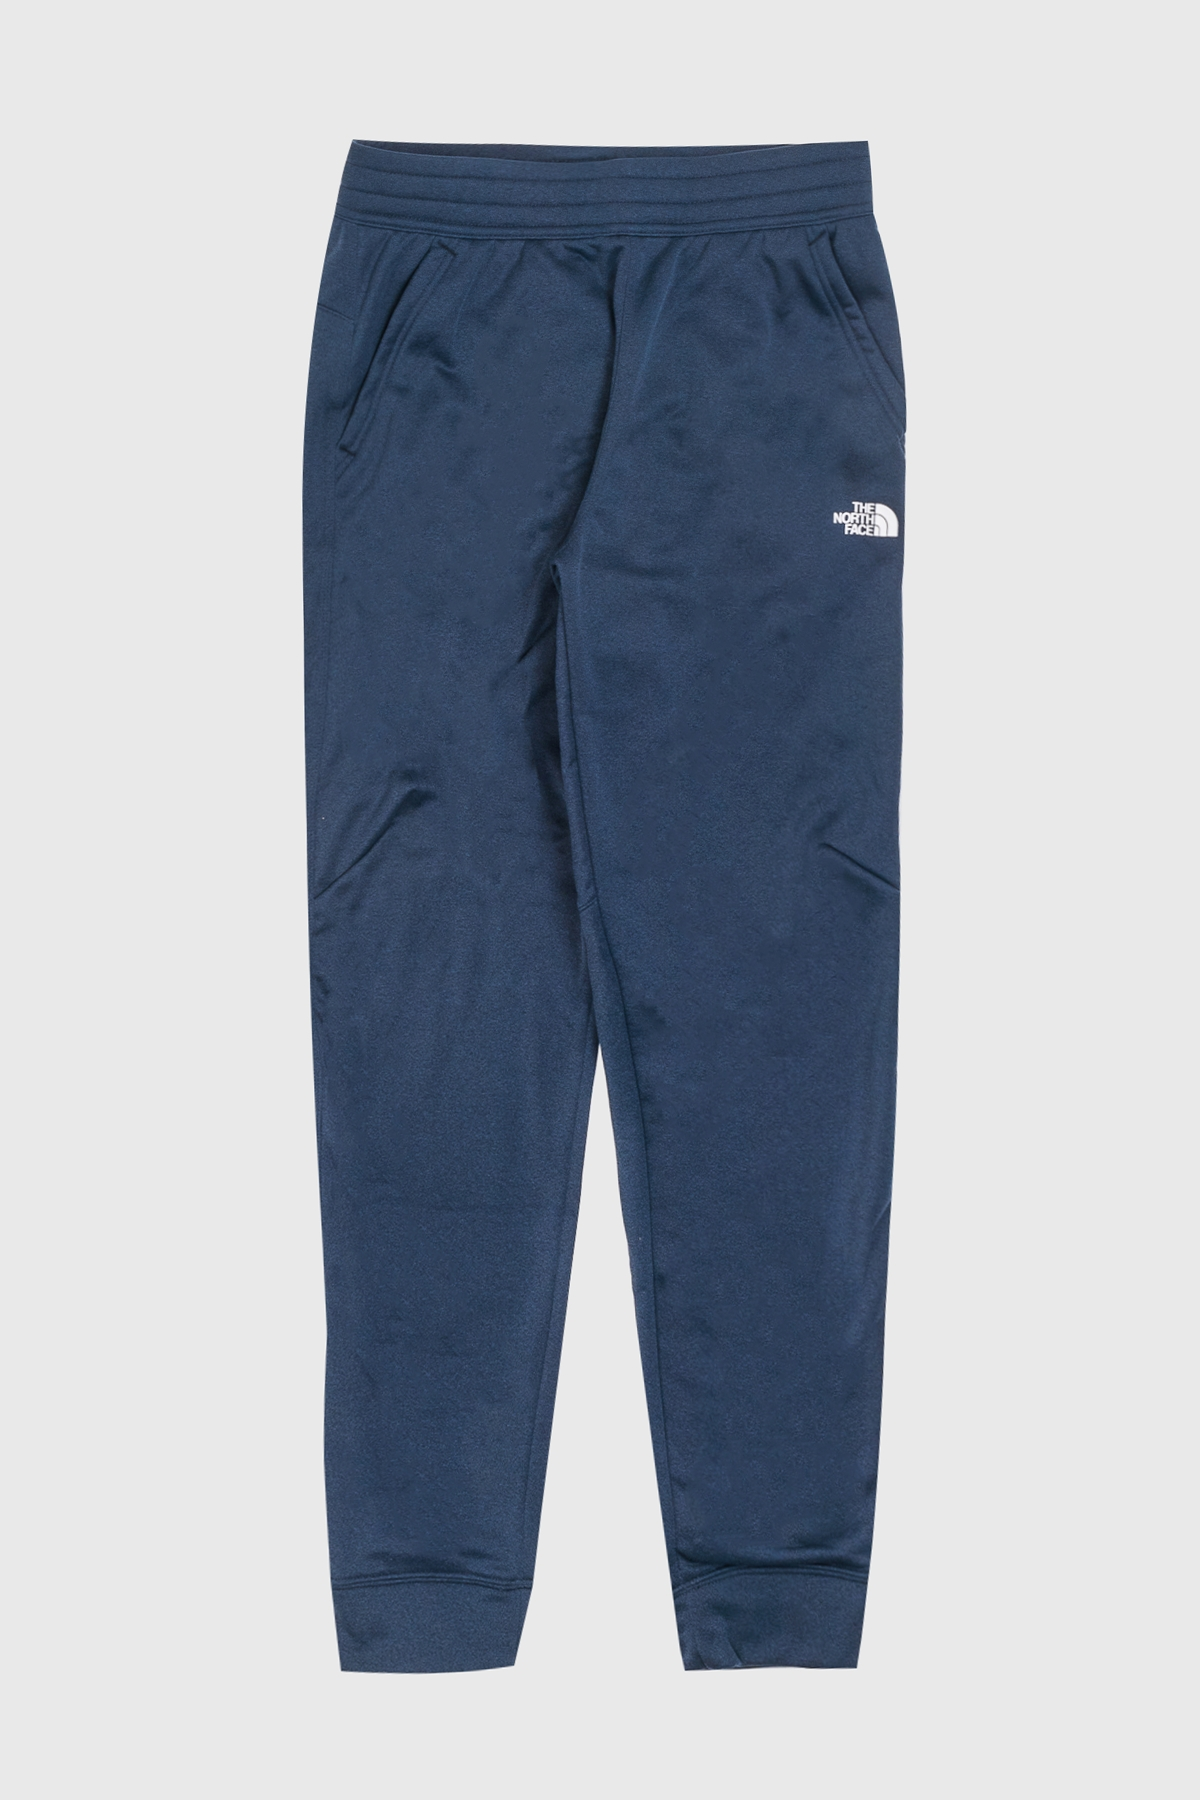 the north face - surgent cuff pant - urban navy